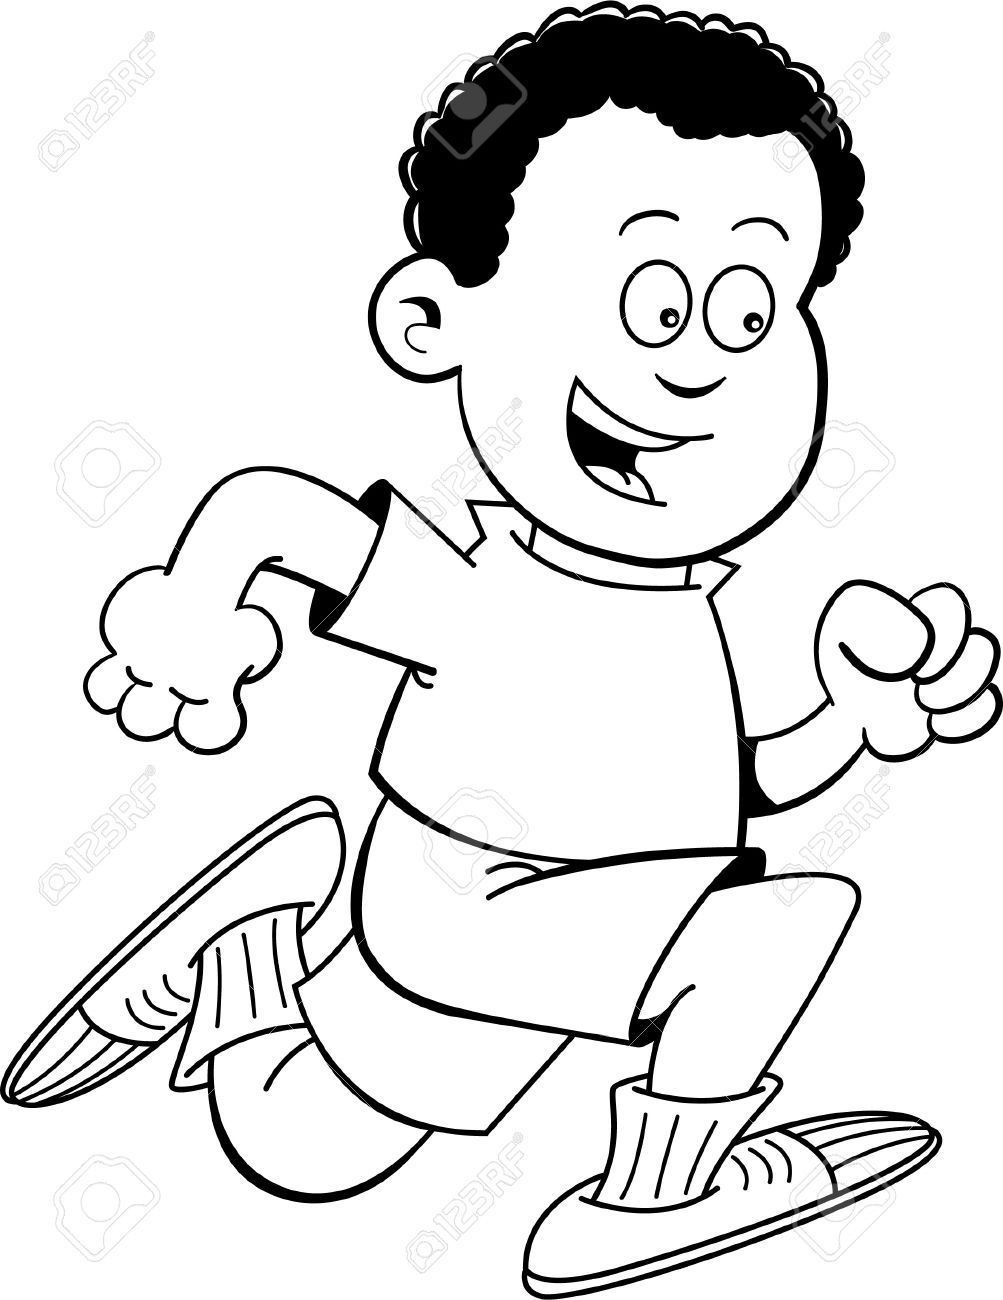 Running Clipart Black And White Free Black And White Illustration Clipart Black And White Black And White Pictures